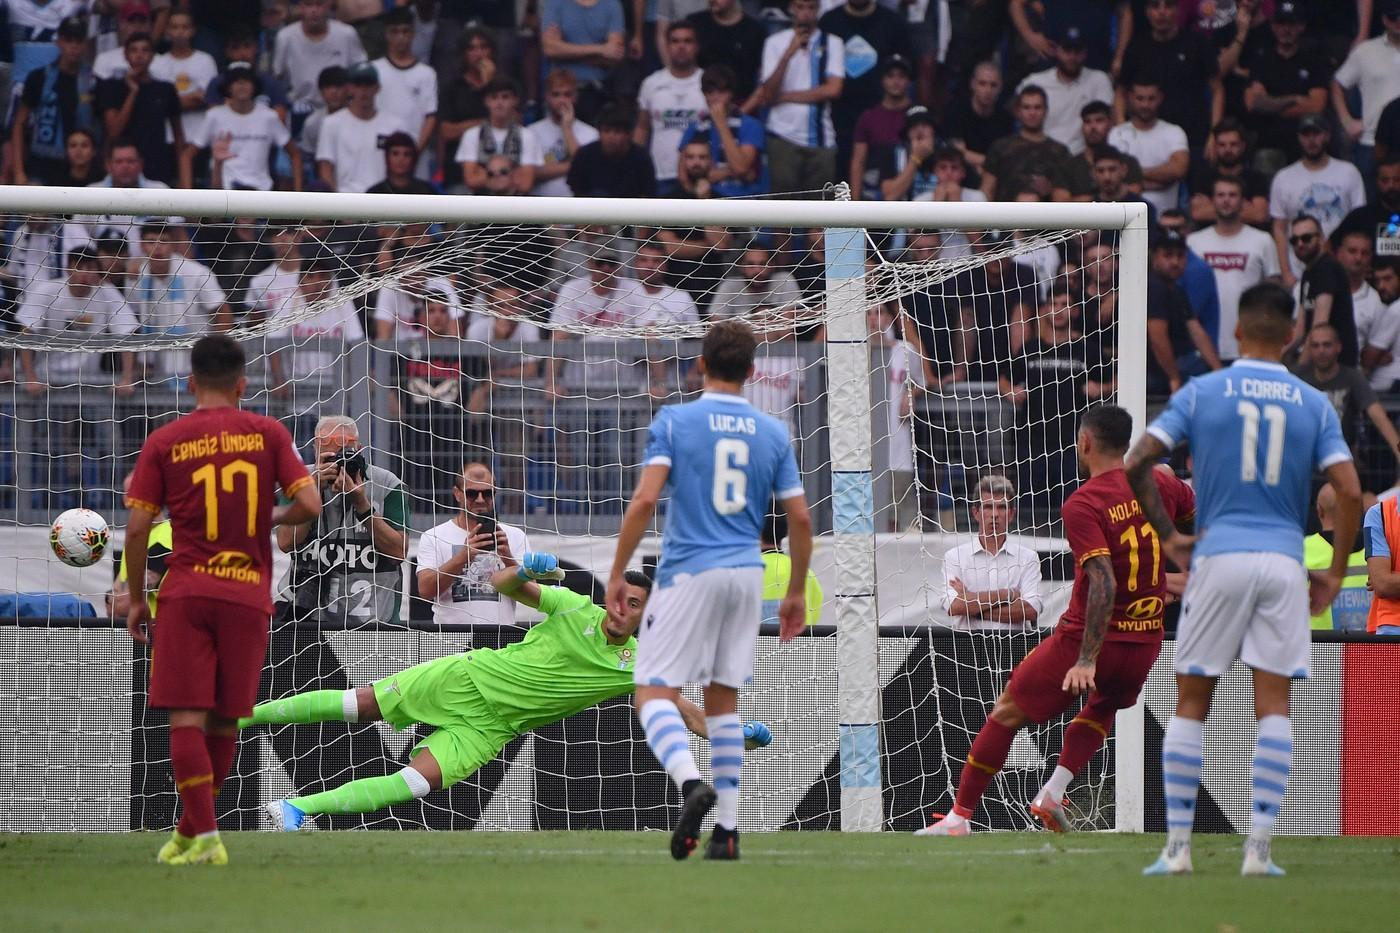 Lazio-Roma, l'analisi tattica: all'Olimpico una gara da Premier League©LaPresse